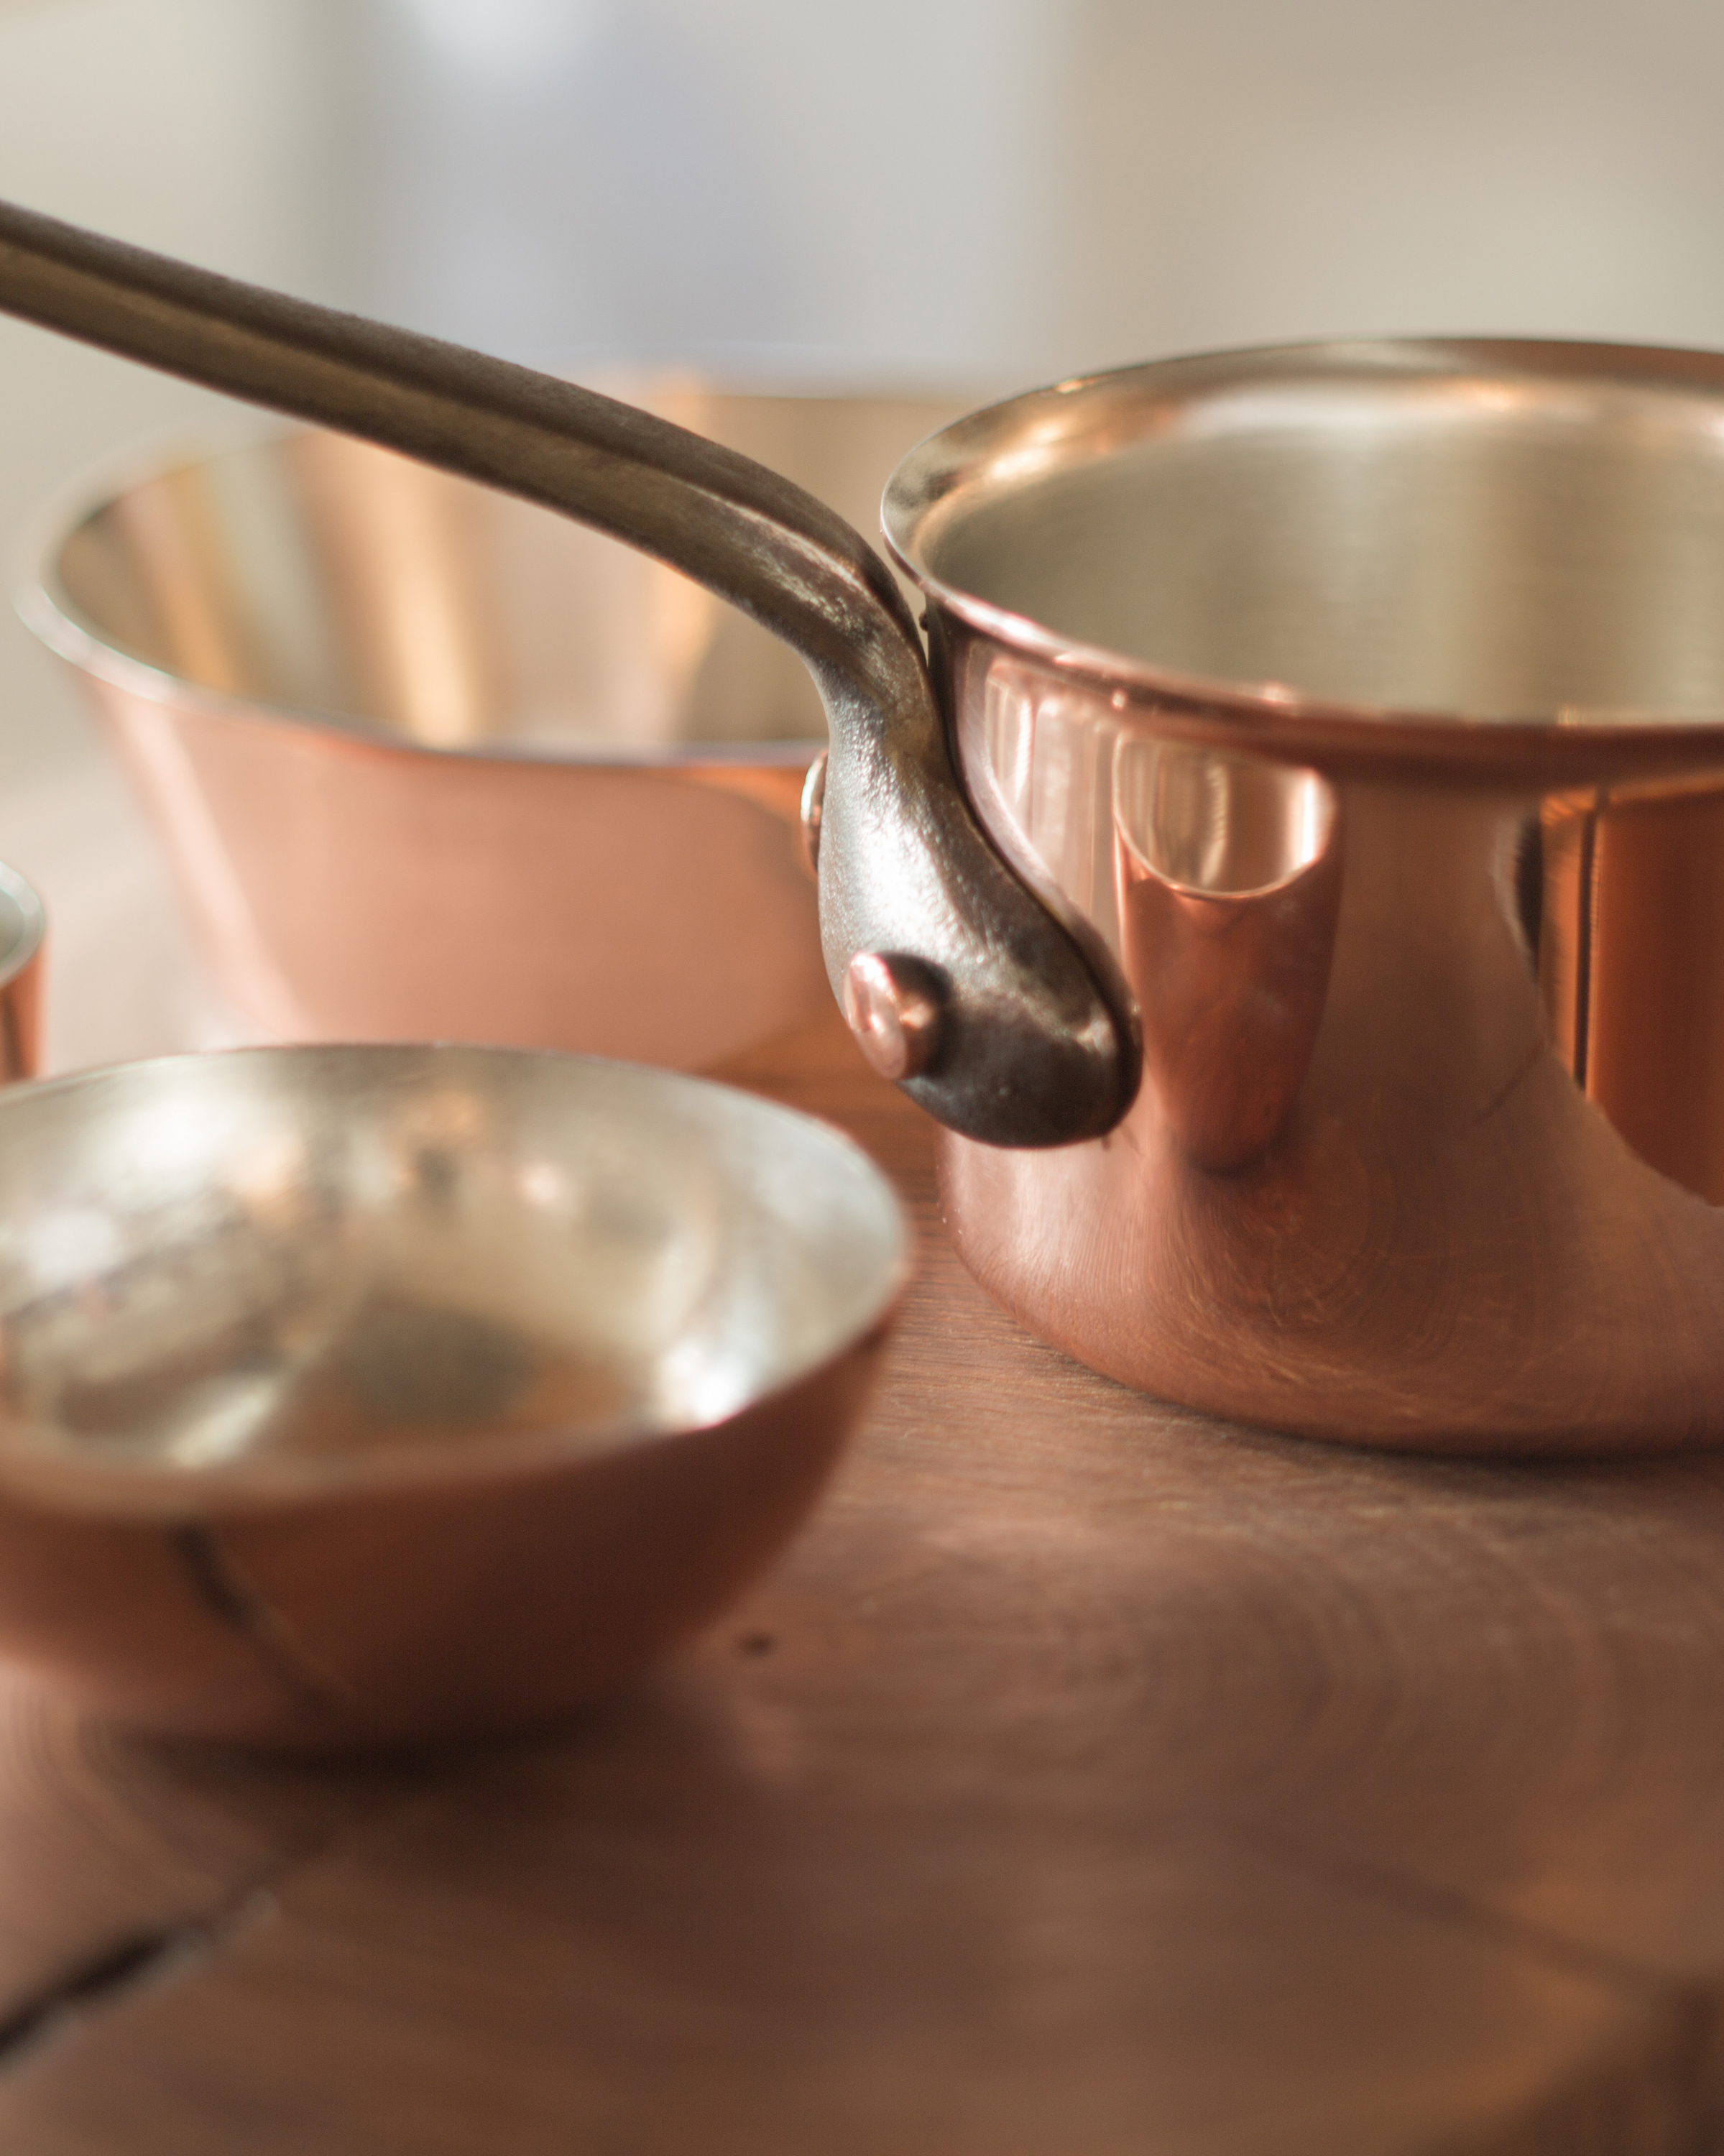 copper-registry-cuparquet-copper-cookware-0116.jpg